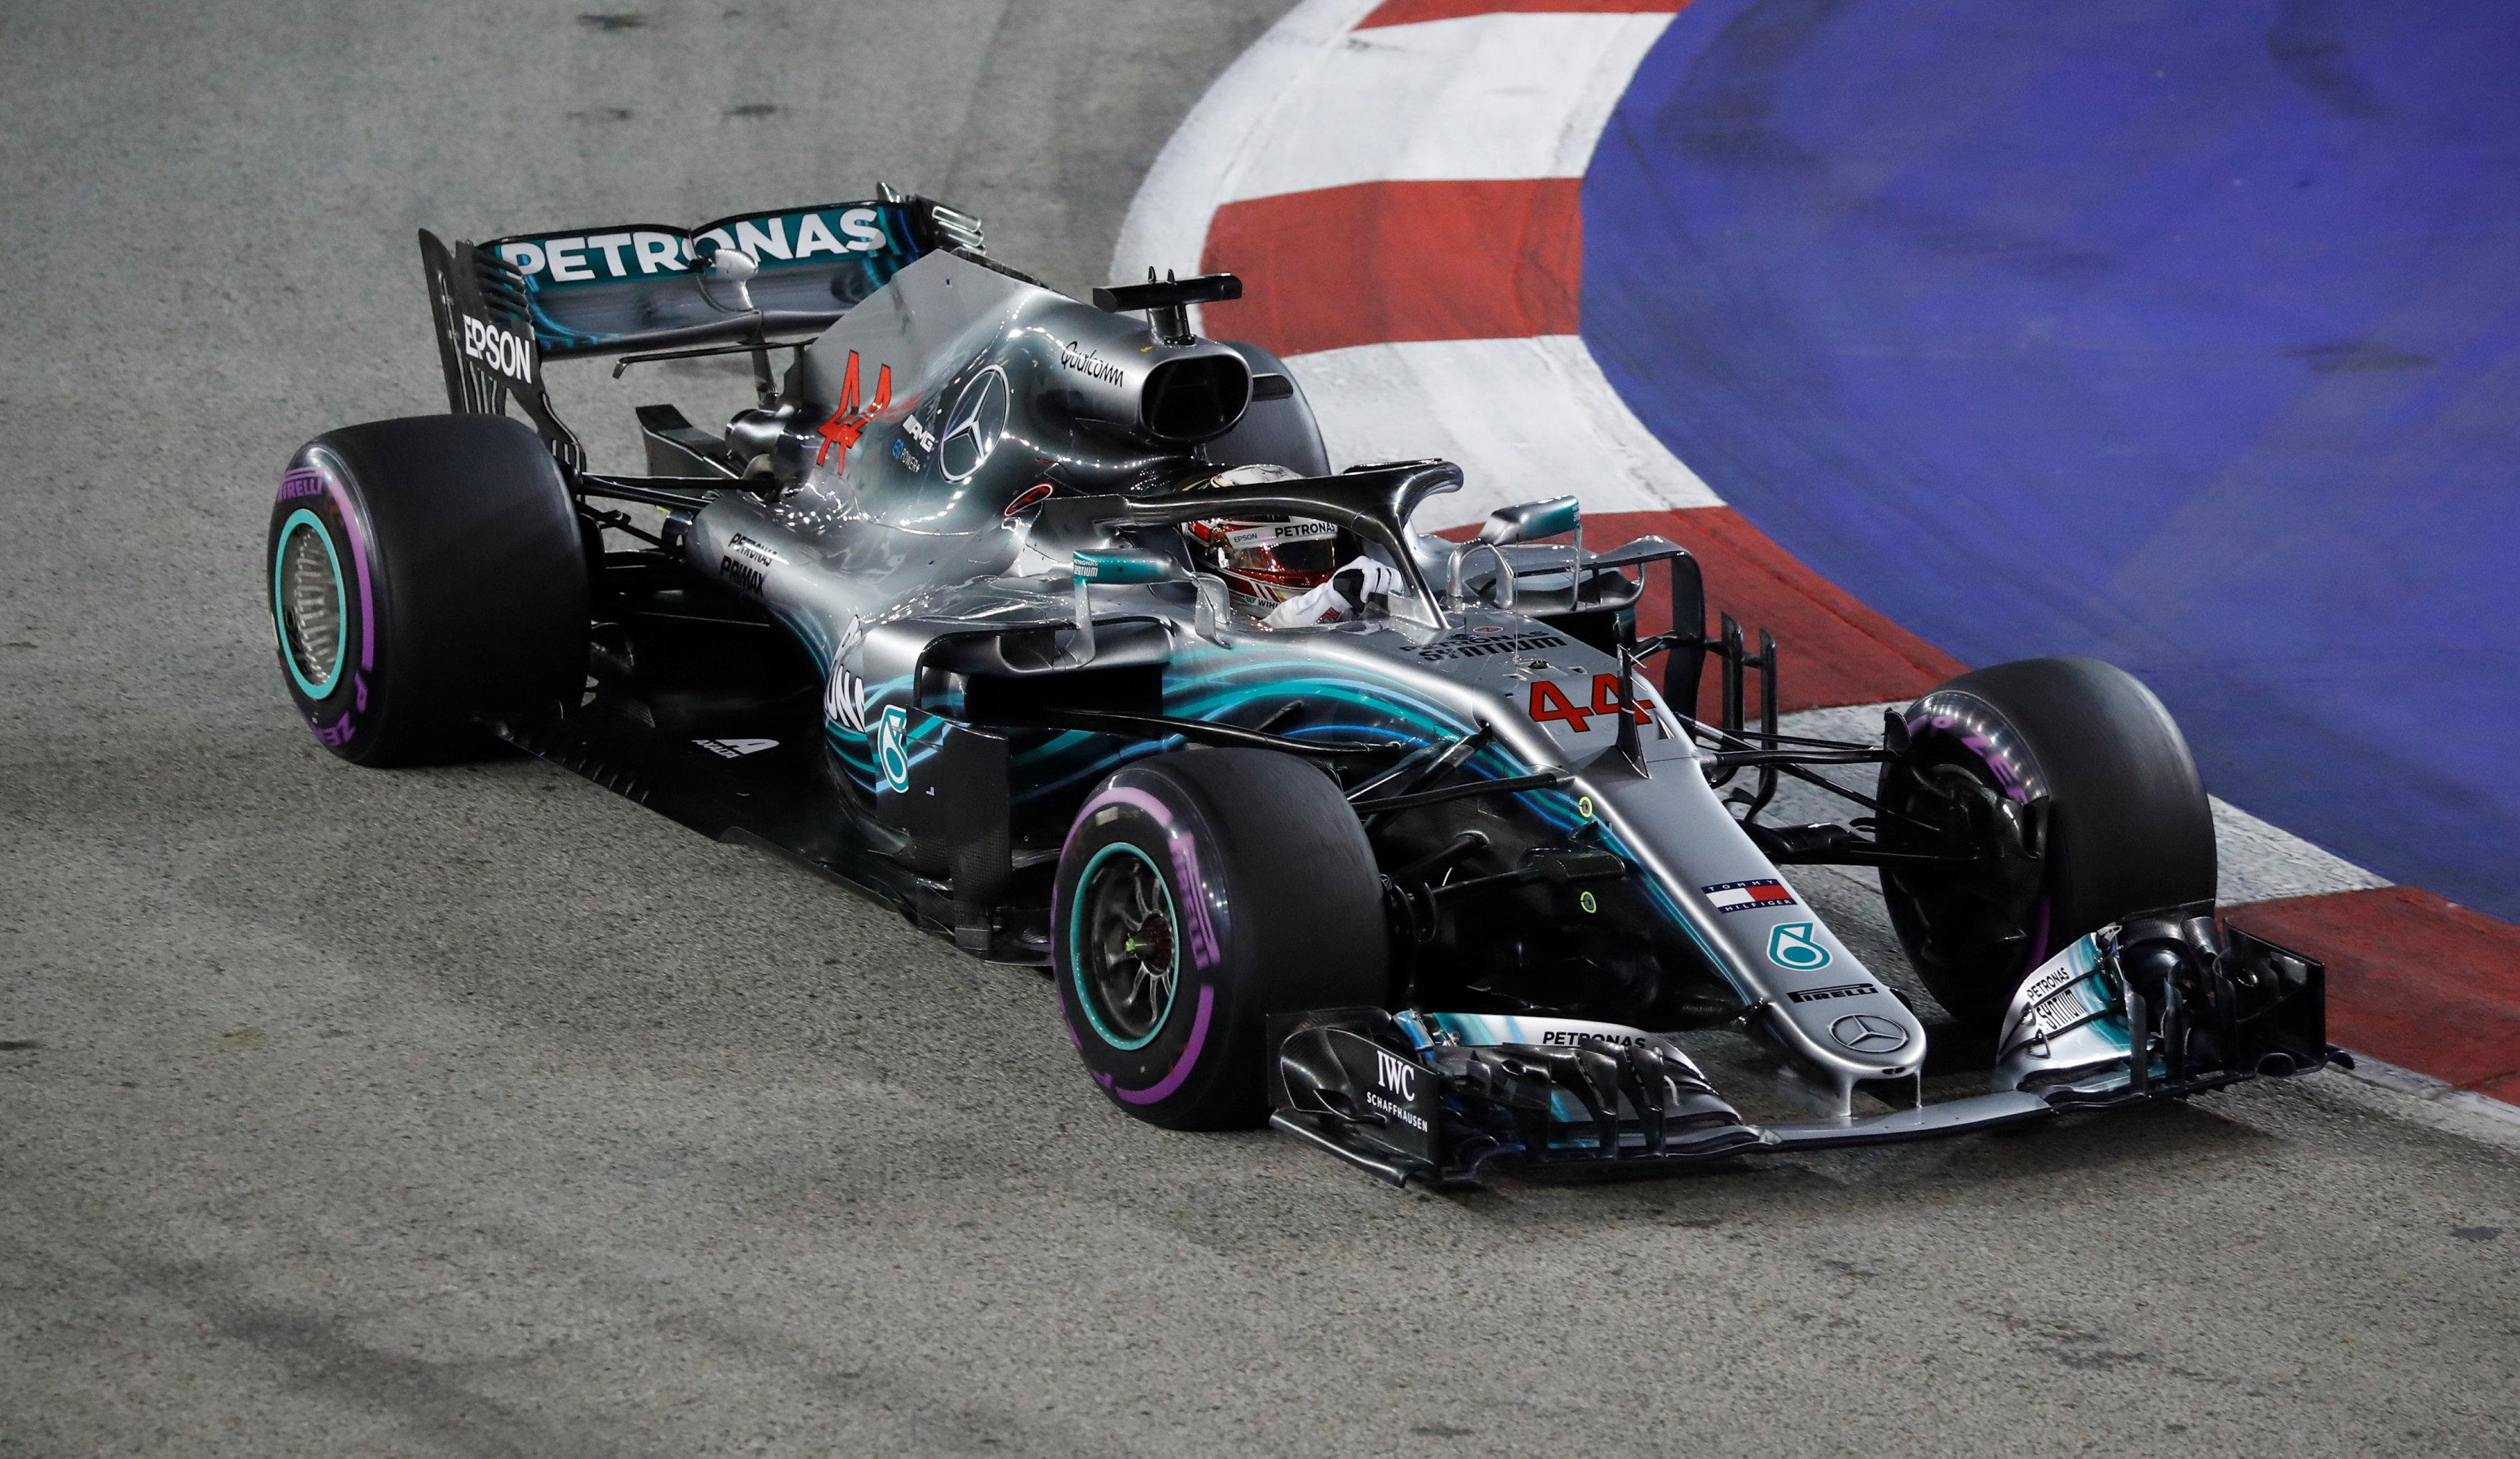 Lewis Hamilton stormed to a brilliant Singapore GP pole